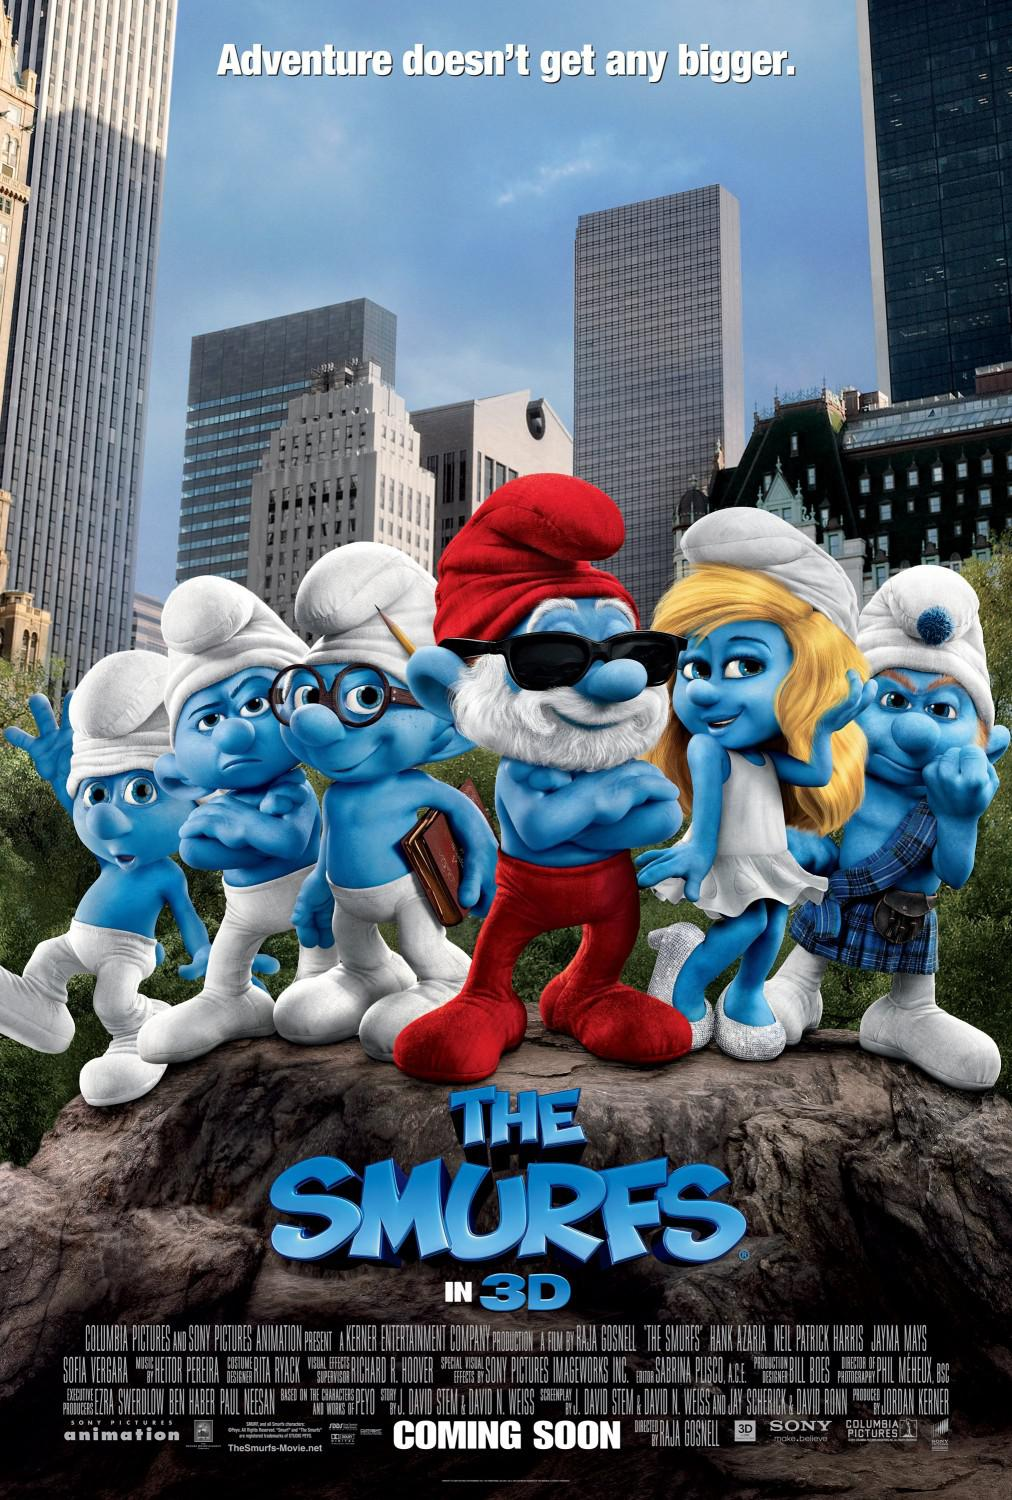 Film I Puffi in 3D - Movie Smurfs in 3D - poster